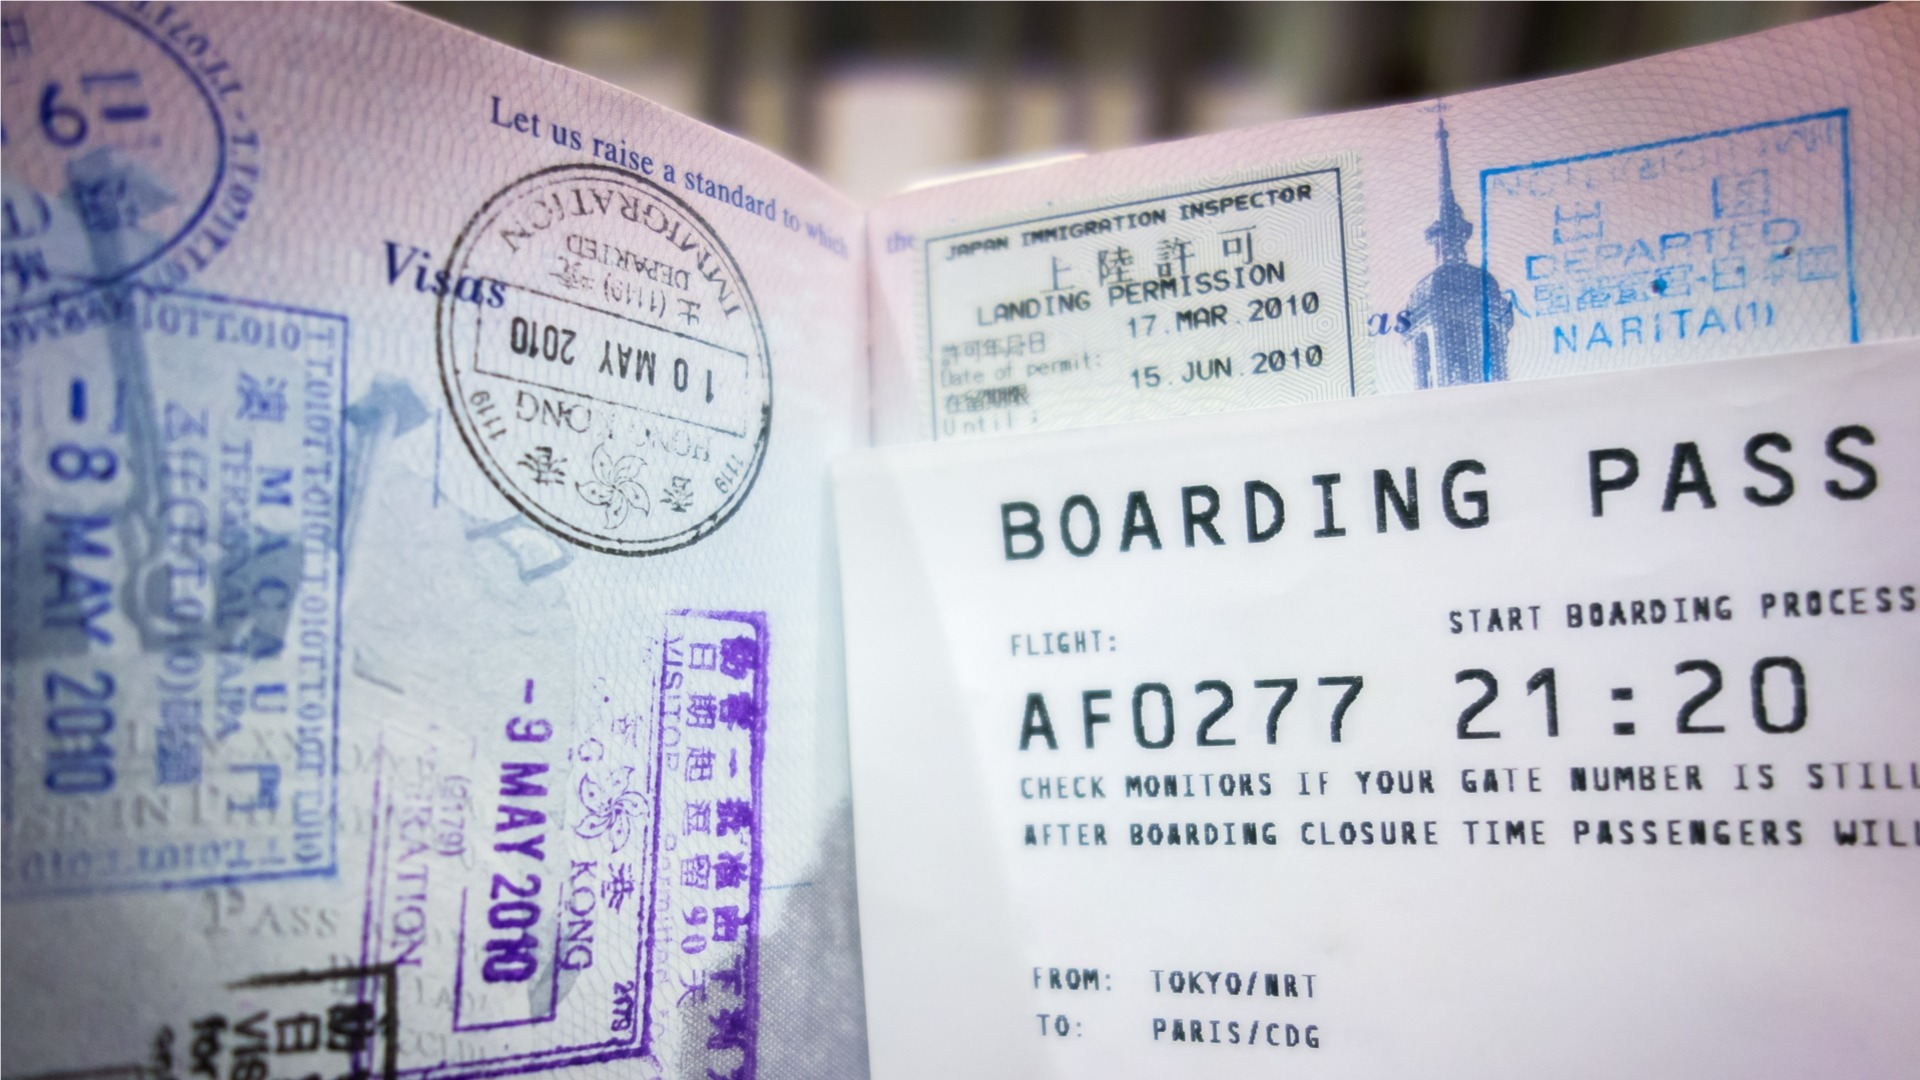 Boarding page and passport